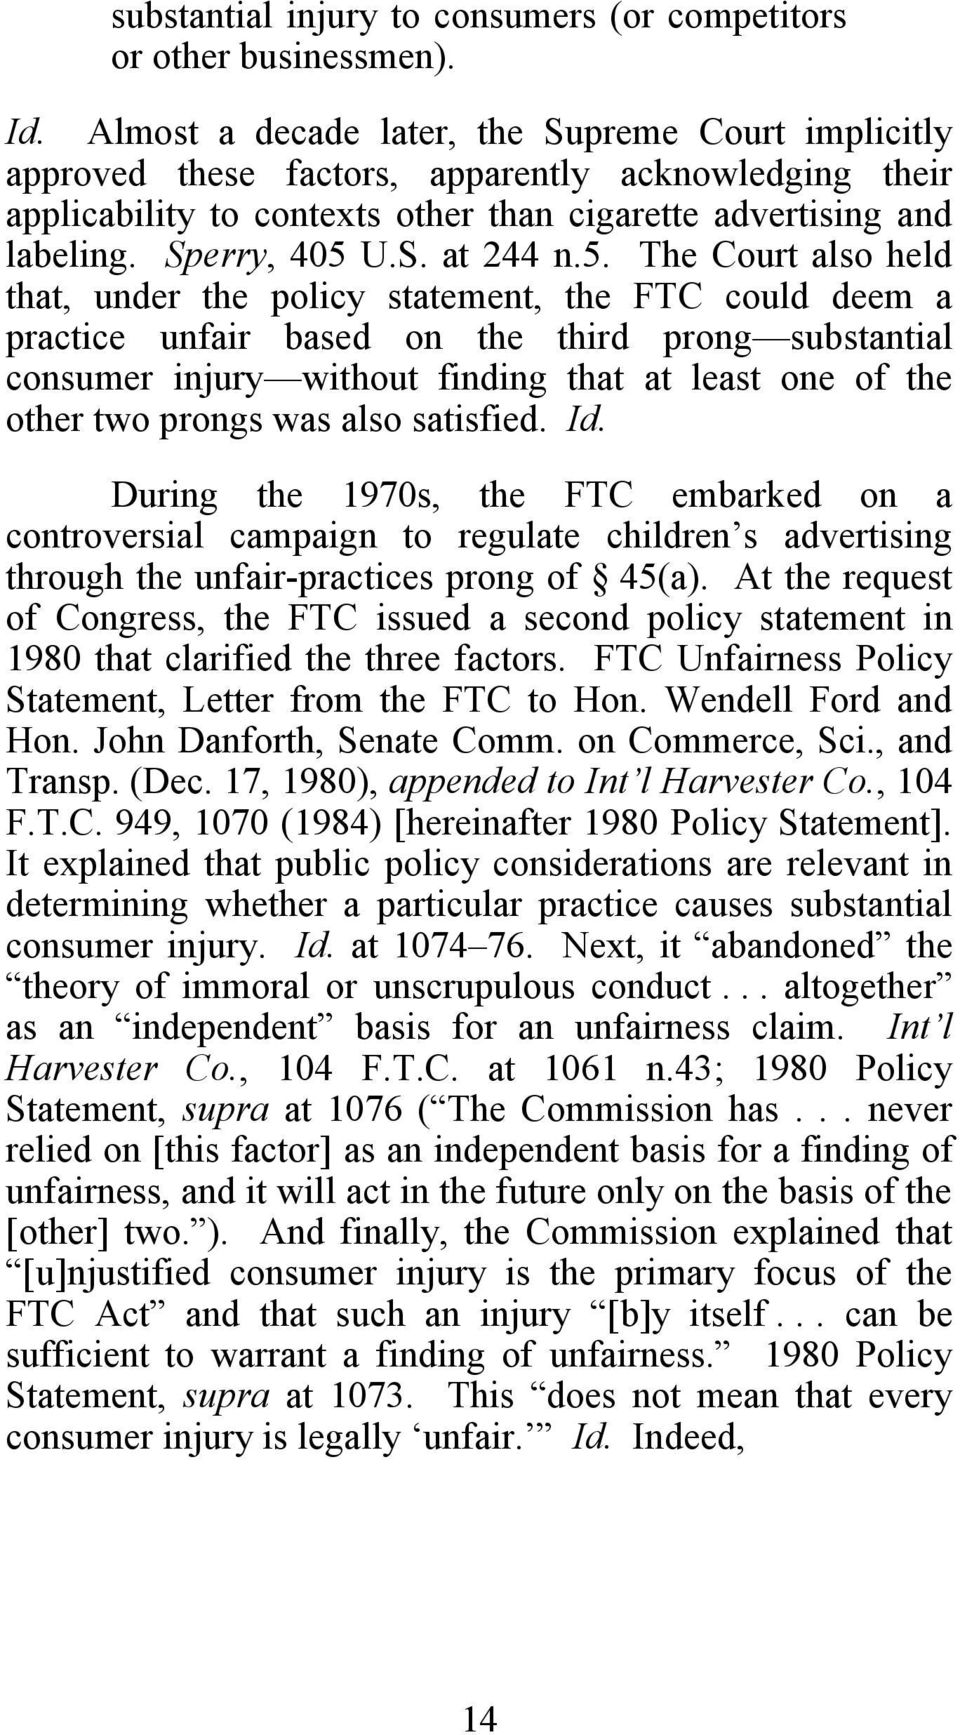 5. The Court also held that, under the policy statement, the FTC could deem a practice unfair based on the third prong substantial consumer injury without finding that at least one of the other two